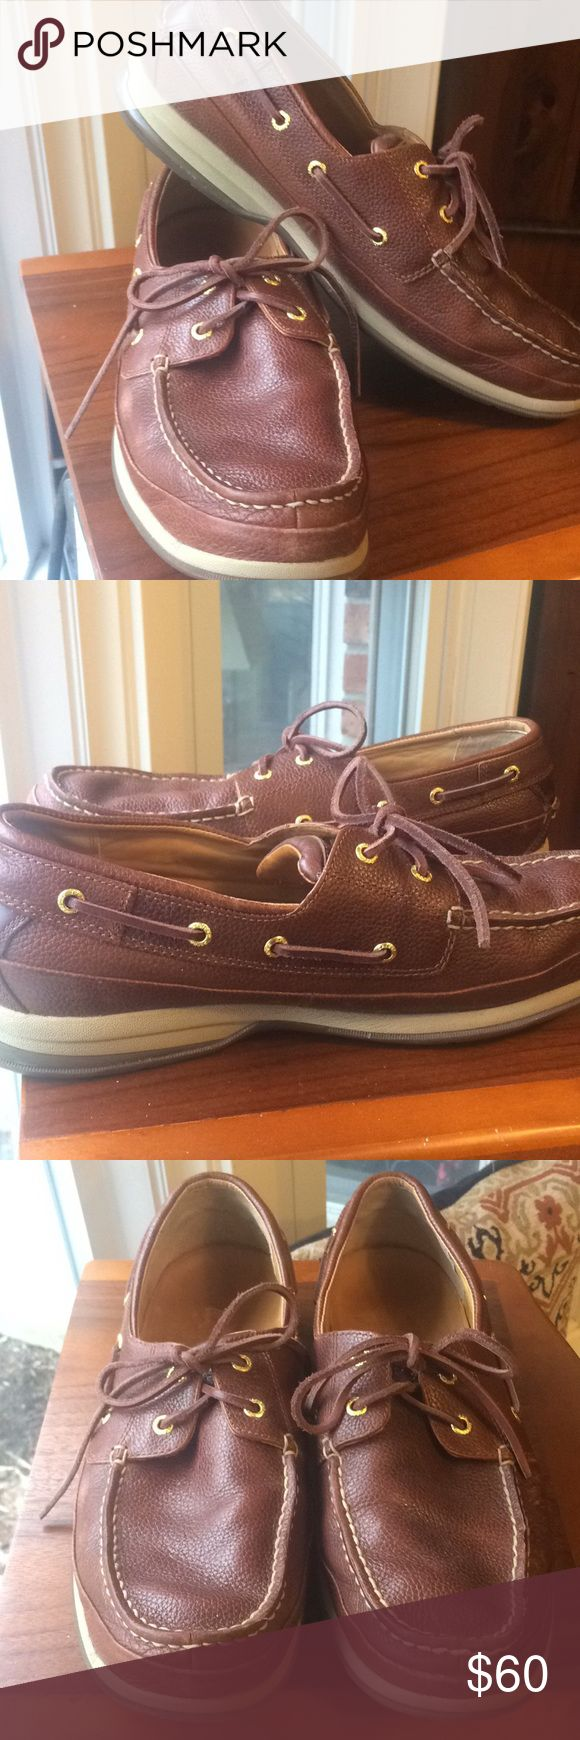 Men's Sperry Gold Cup Top Sider Boat Shoes Excellent gently used condition! Rich brown leather with hand sewn construction, anti-shock & vibration (ASV), 360' lacing system with 18k gold eyelets, genuine rawhide lace, non-marking rubber outsole with Wave-Siping provides ultimate wet/dry traction. Size 13. Original price $165. Sperry Top-Sider Shoes Boat Shoes